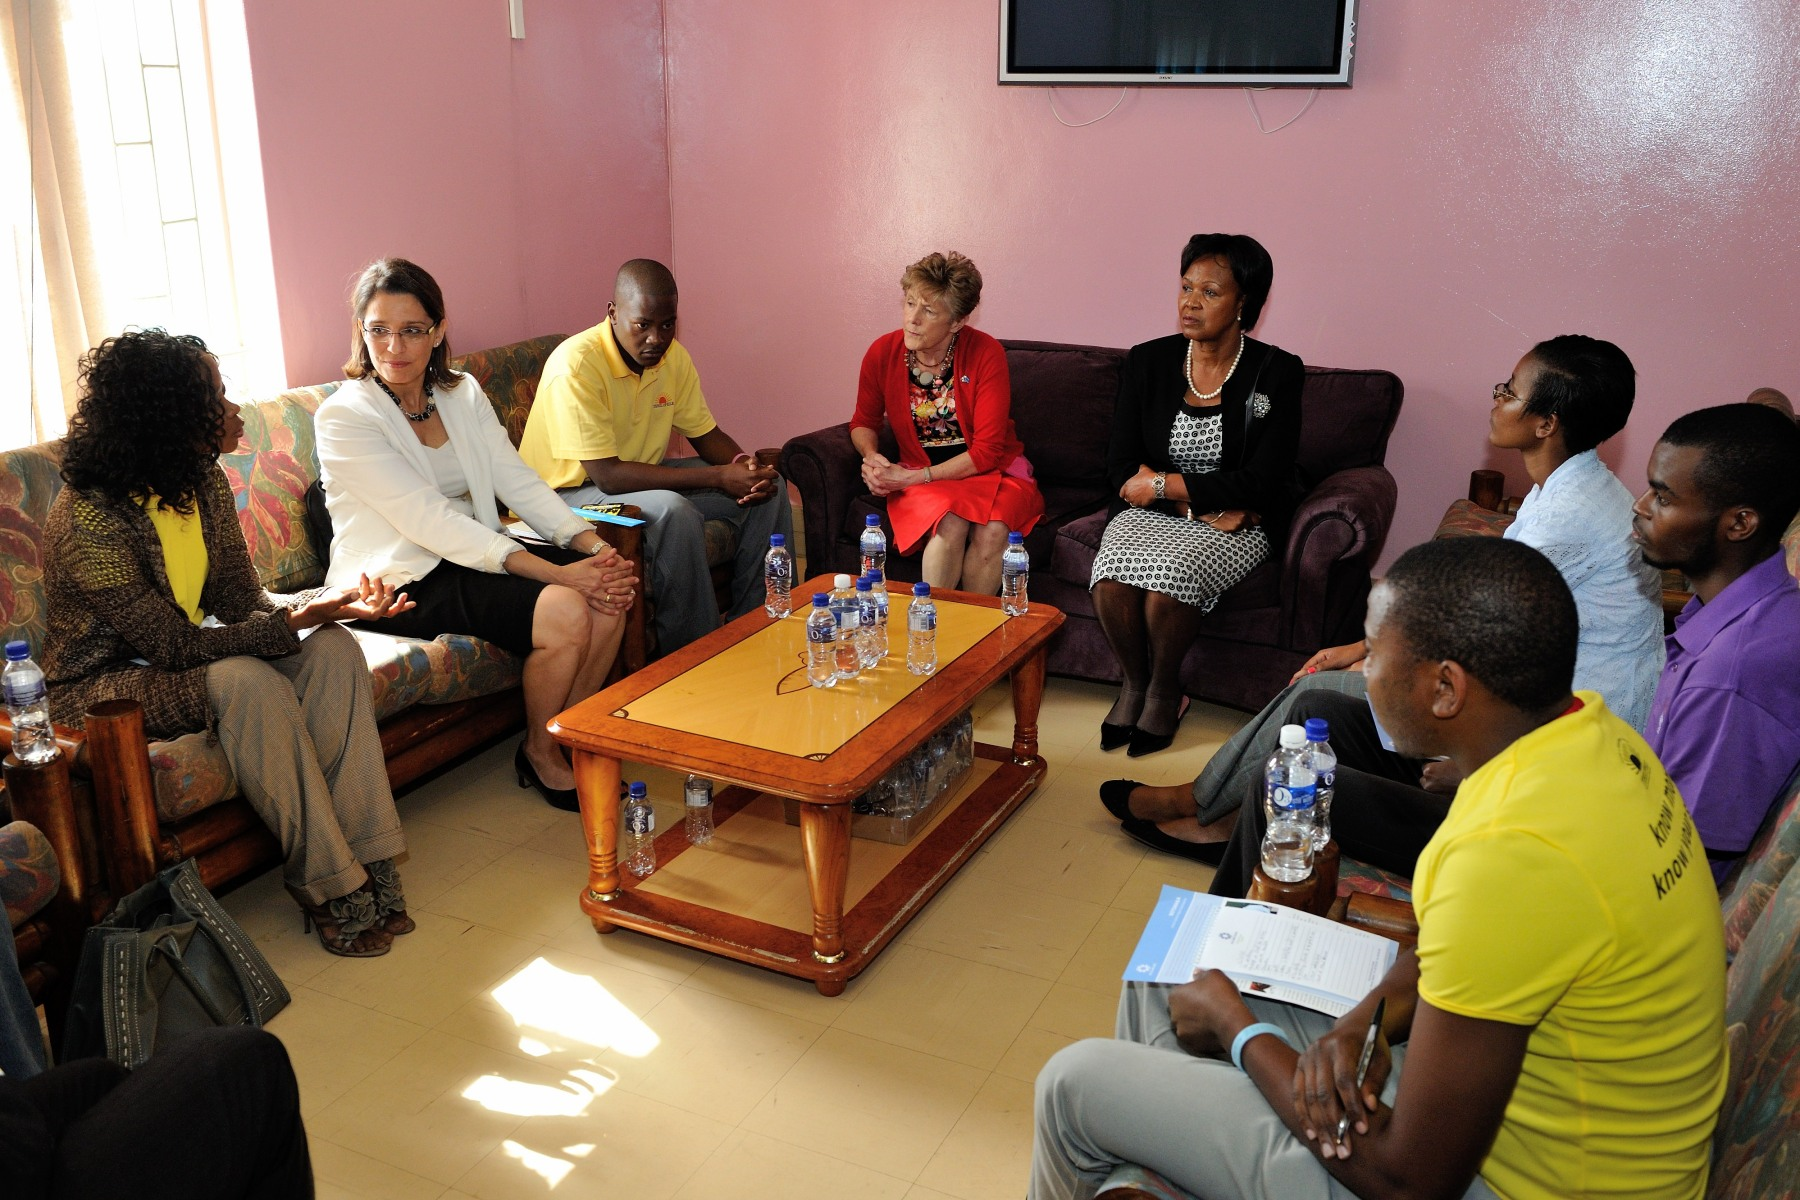 During her visit, Her Excellency had the opportunity to discuss with youth how have benefited from this clinic.